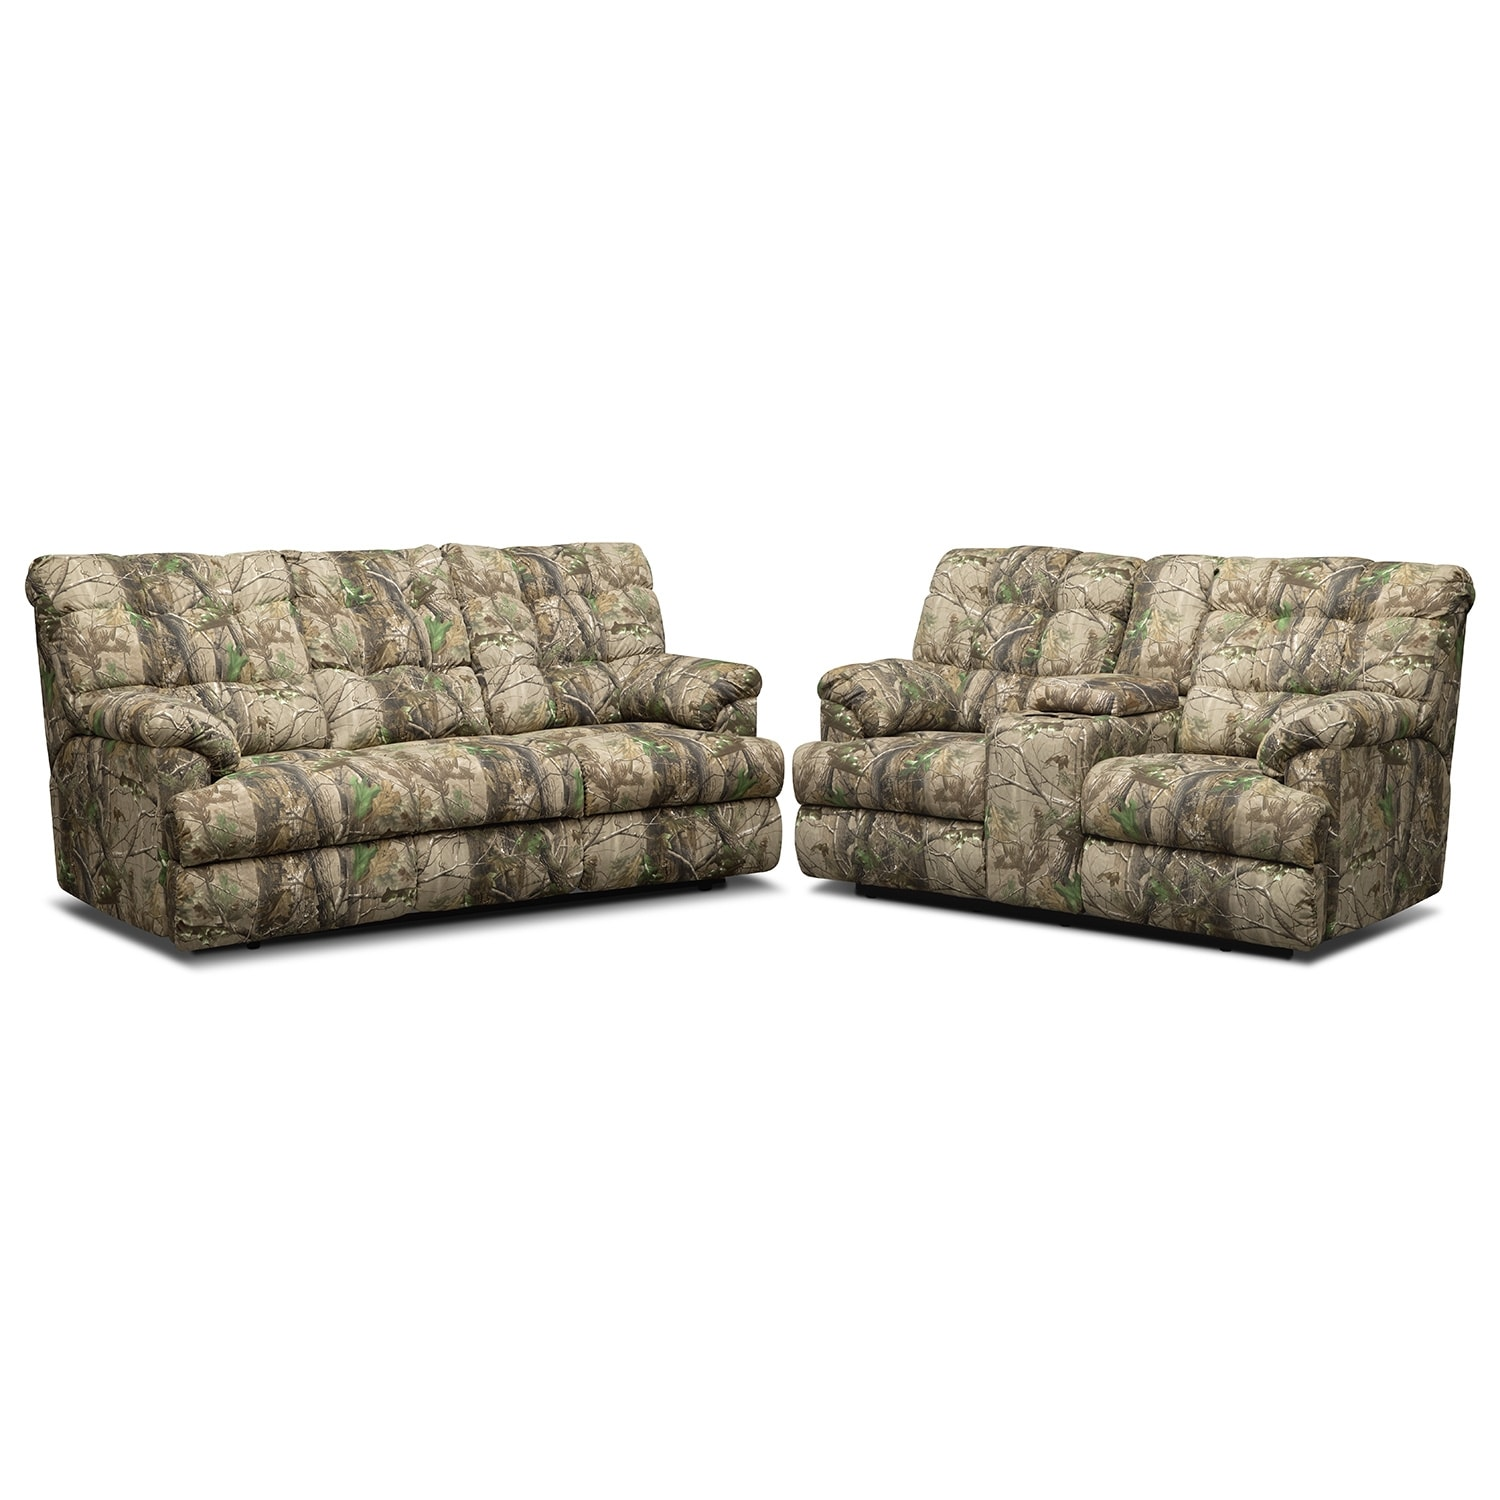 Living Room Furniture - Jasper Bay 2 Pc. Reclining Living Room